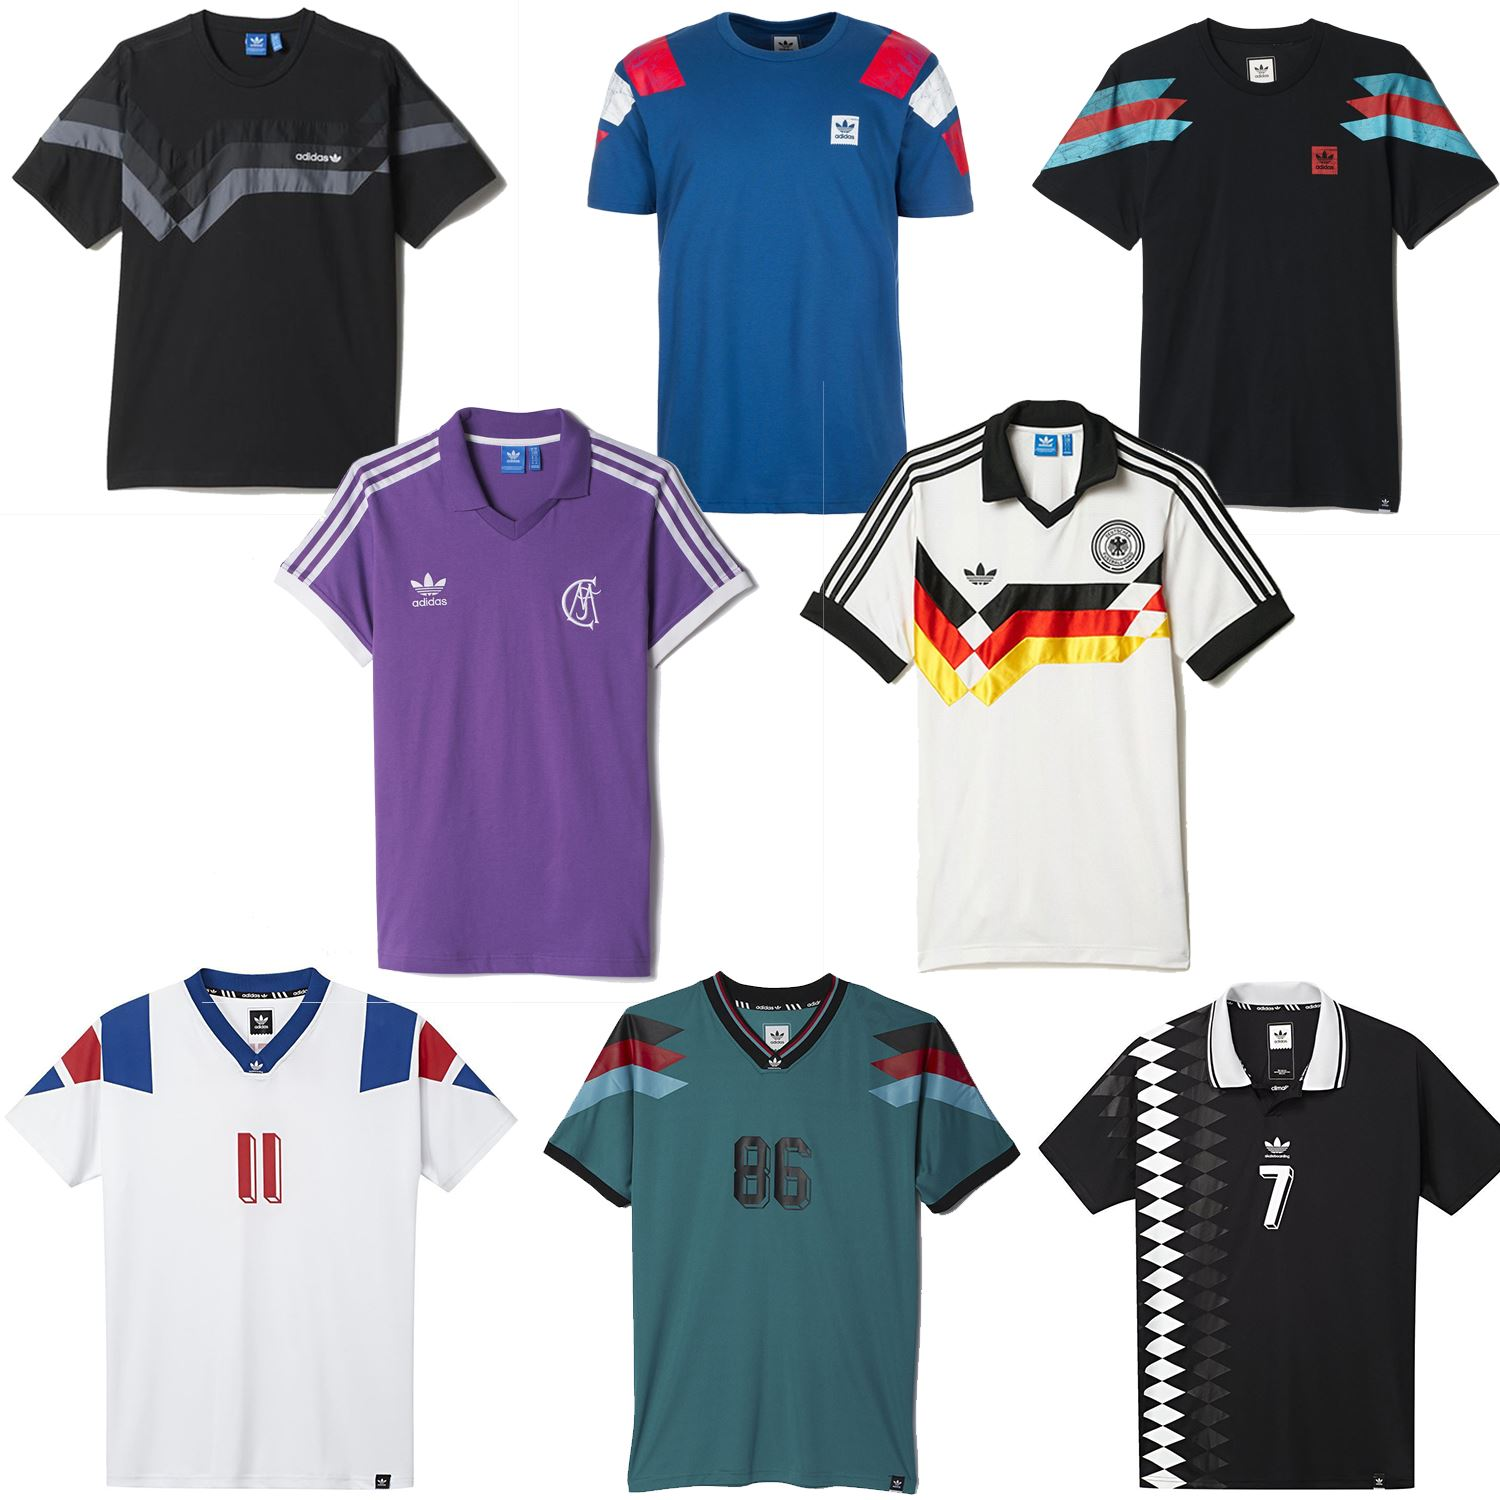 Retro Jerseys Details About Adidas Originals Retro Football Jerseys France Germany Spain Real Madrid Men S